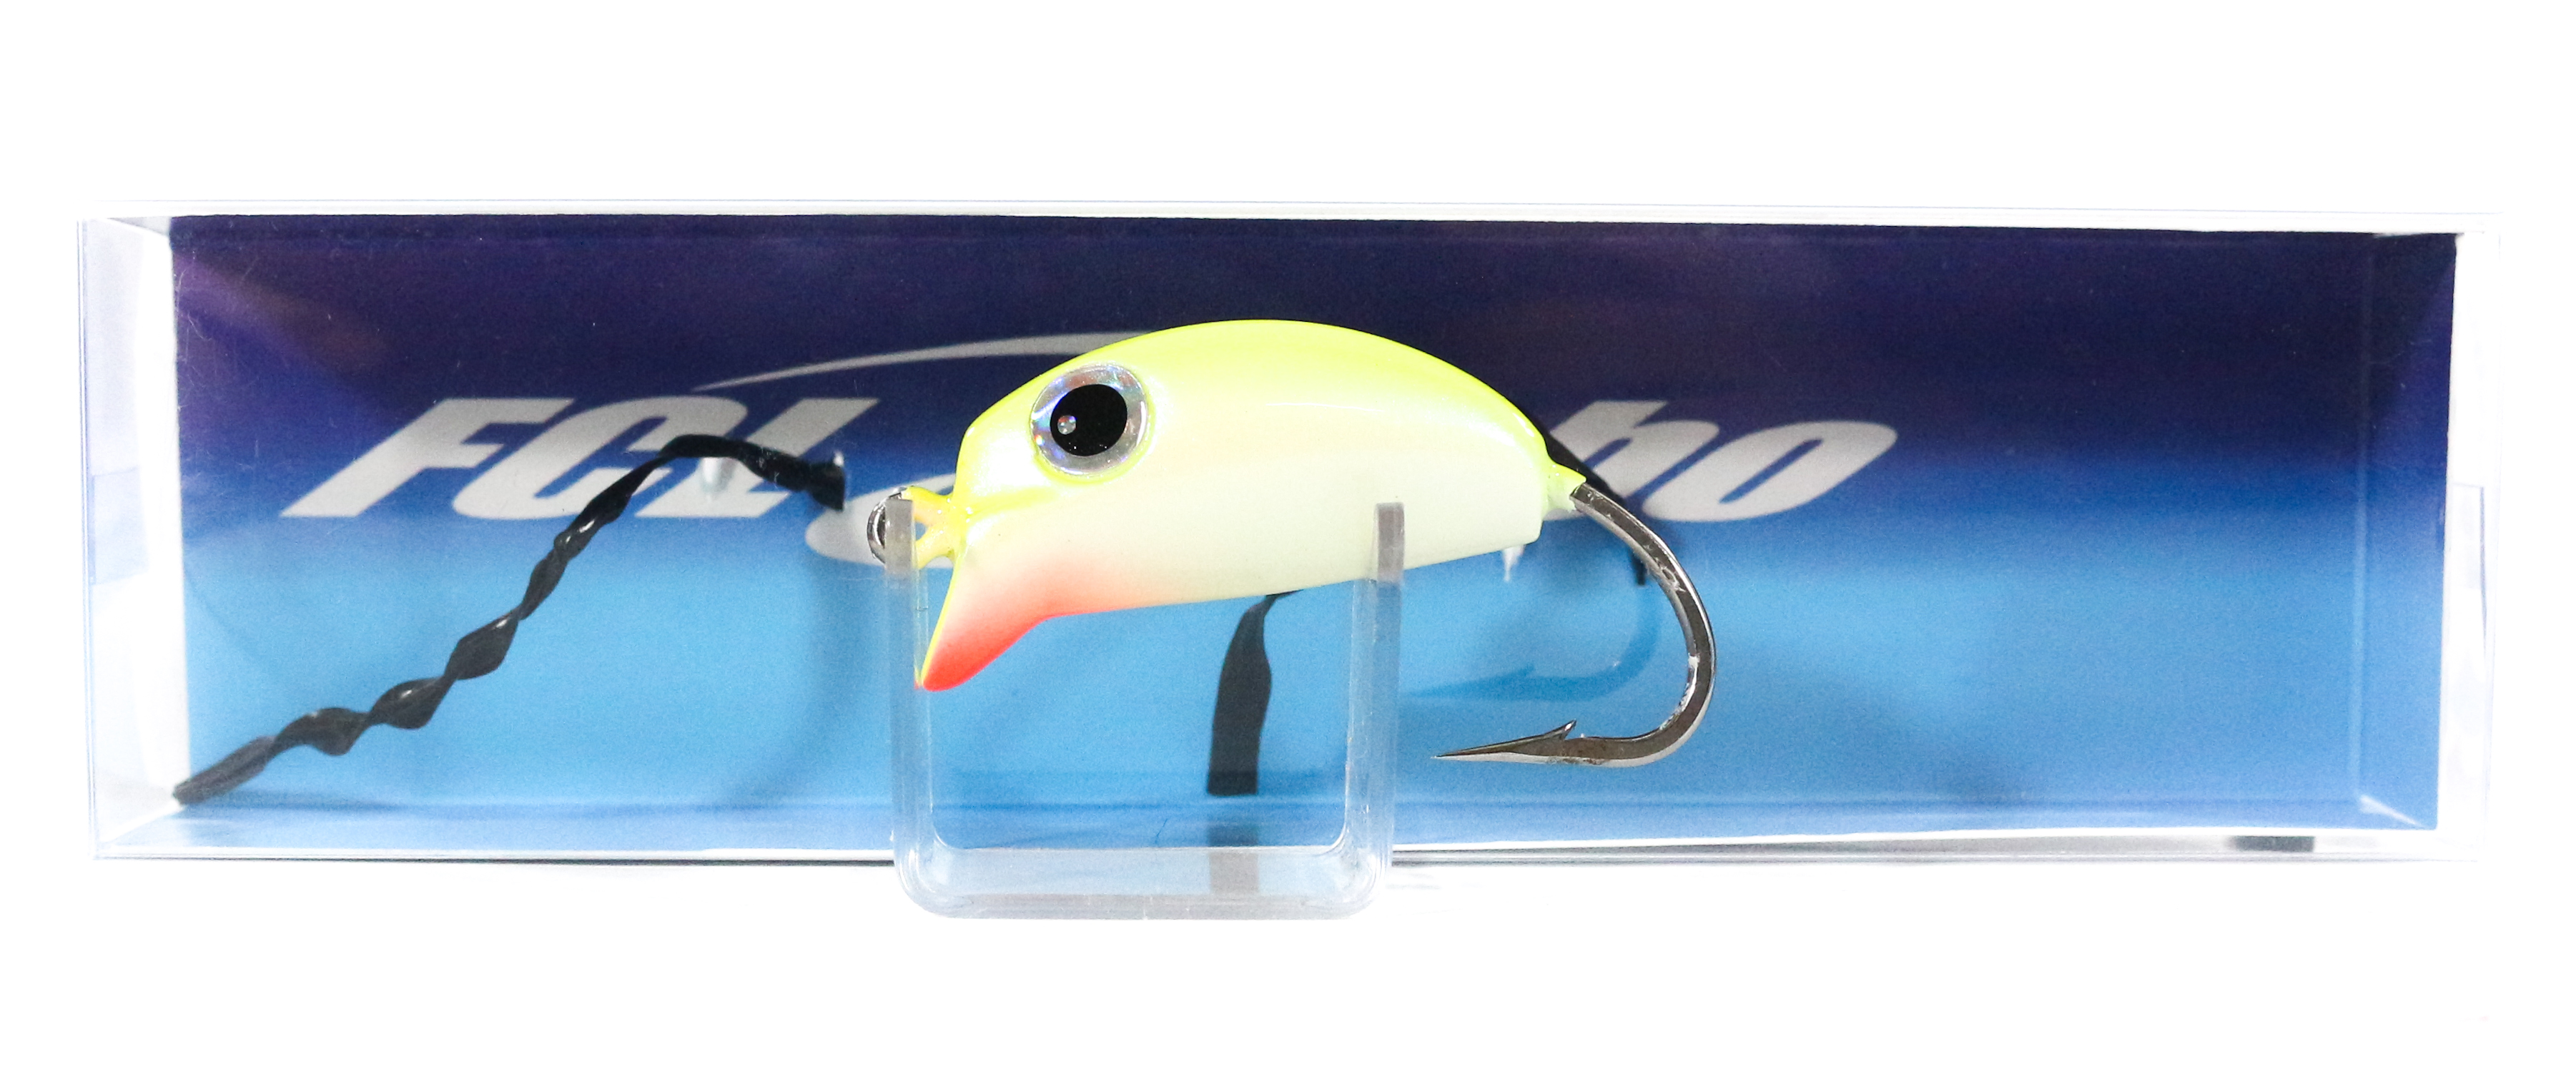 FCL Labo Lure S.I 50 Floating Lure CH (3871)